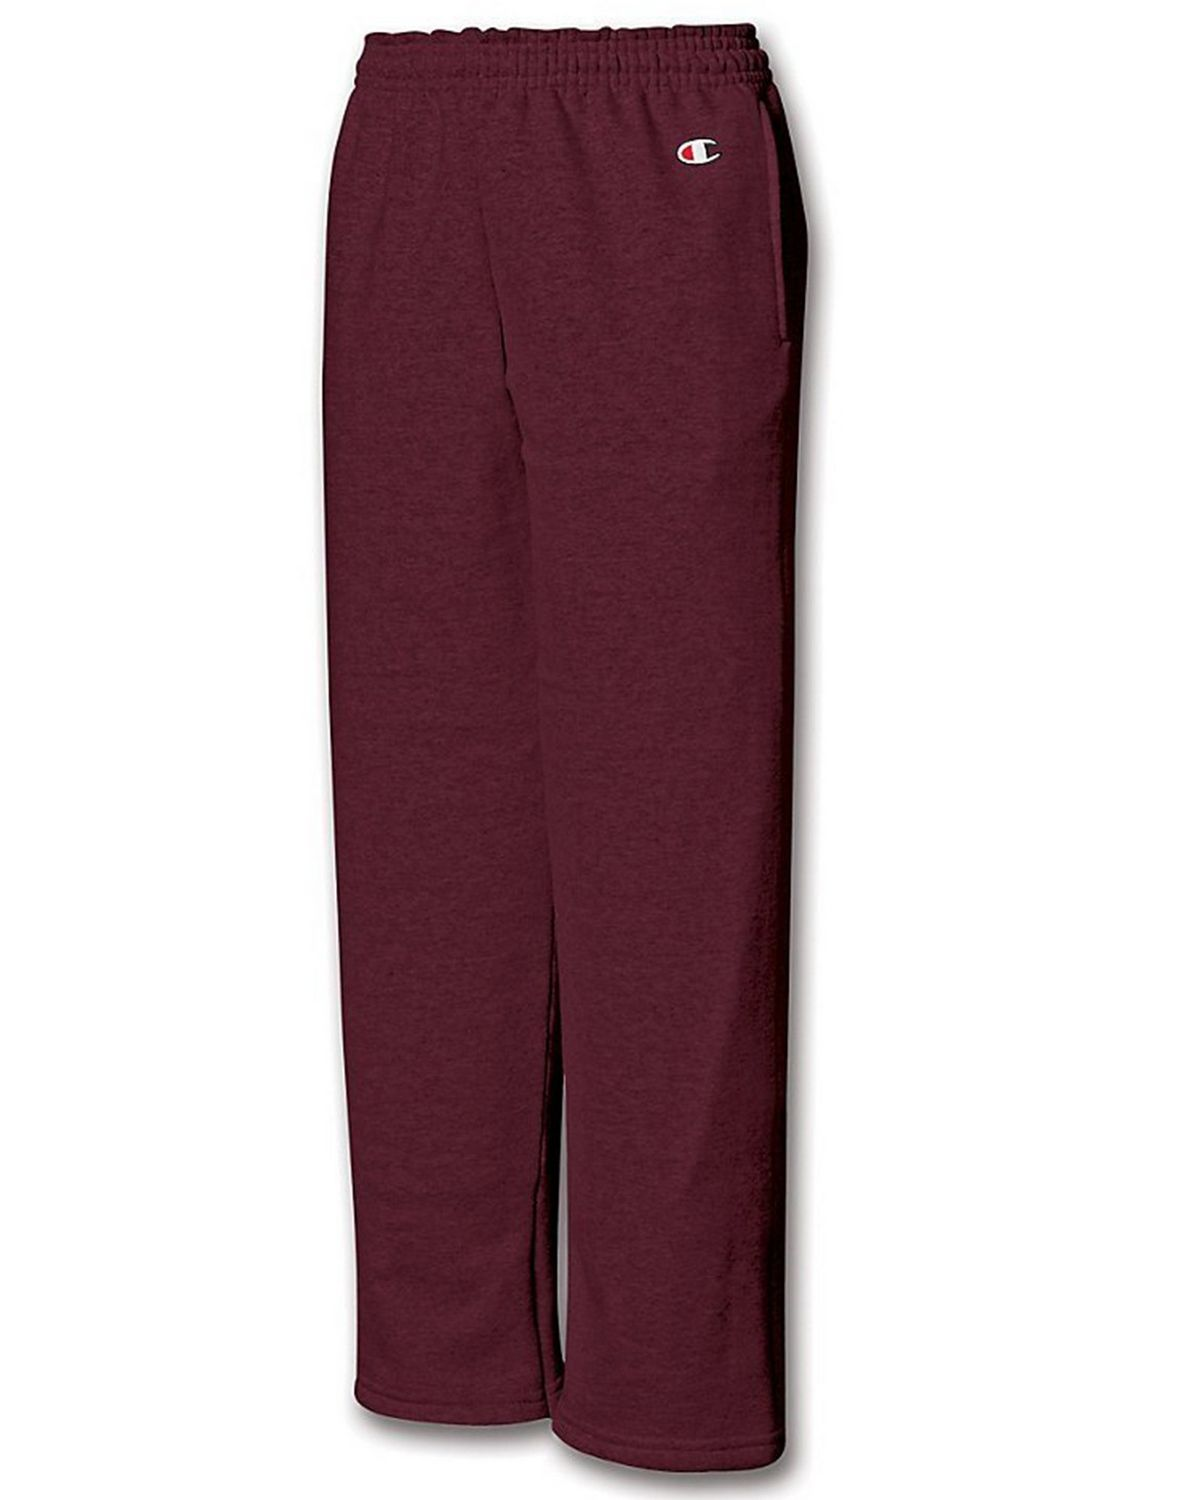 Champion P890 Youth Fleece Open Bottom Pant - Maroon - S P890